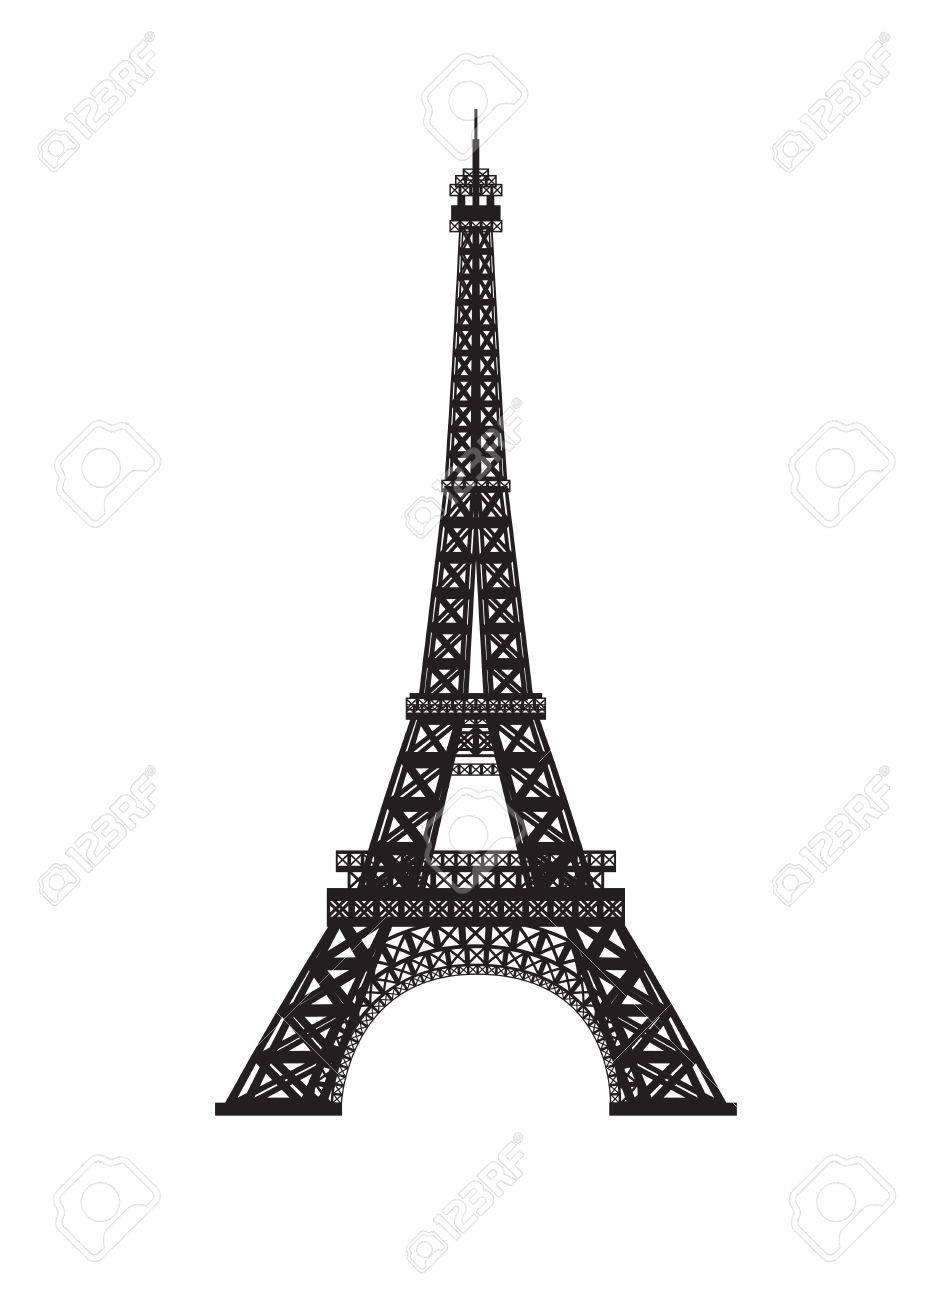 Eiffel tower isolated on white background. - 58665598